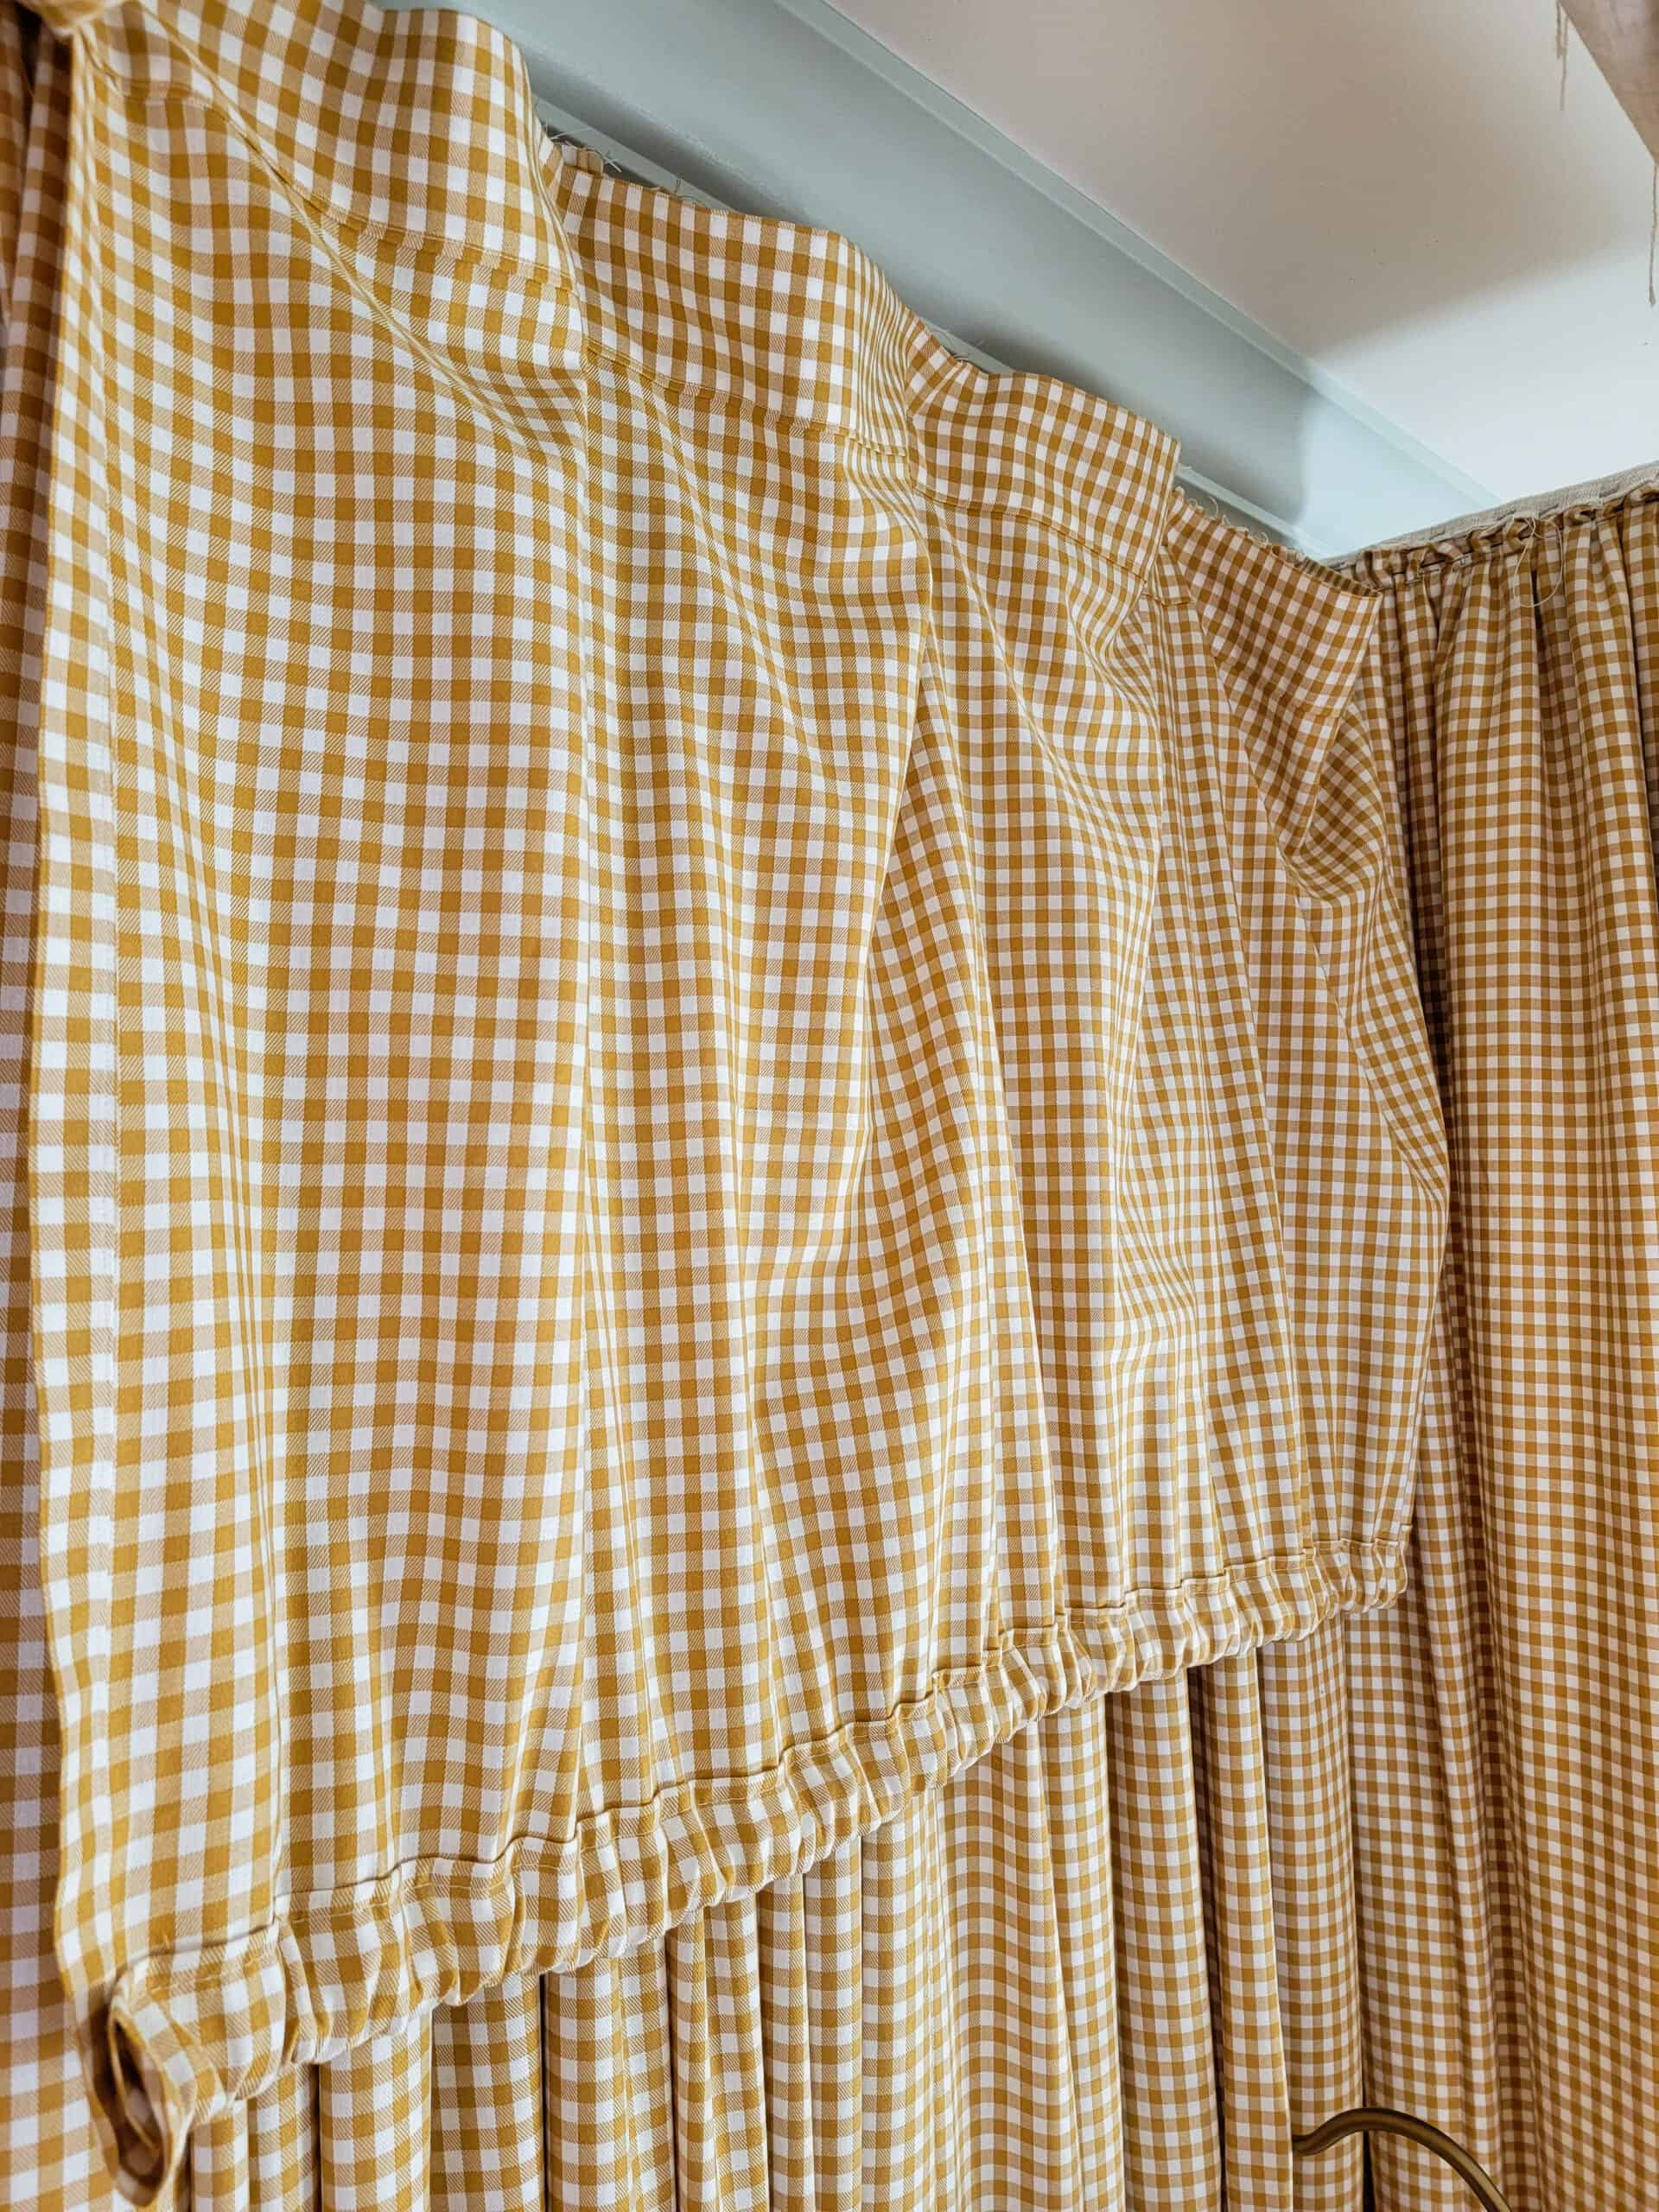 yellow gingham fabric hanging from canopy frame